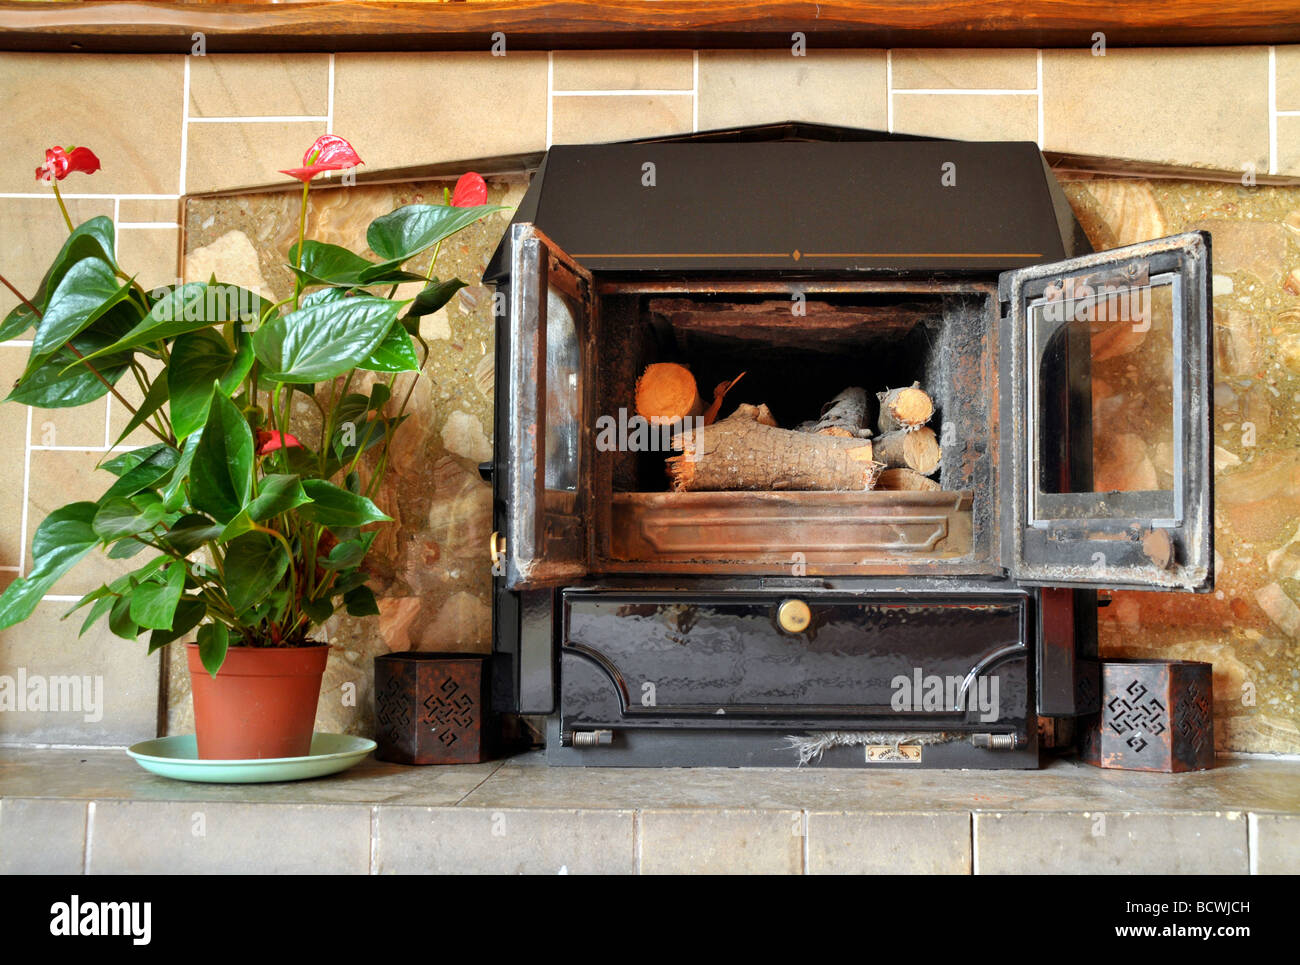 An unlit open doored fire place in a lounge, with a potted plant near it. - Stock Image